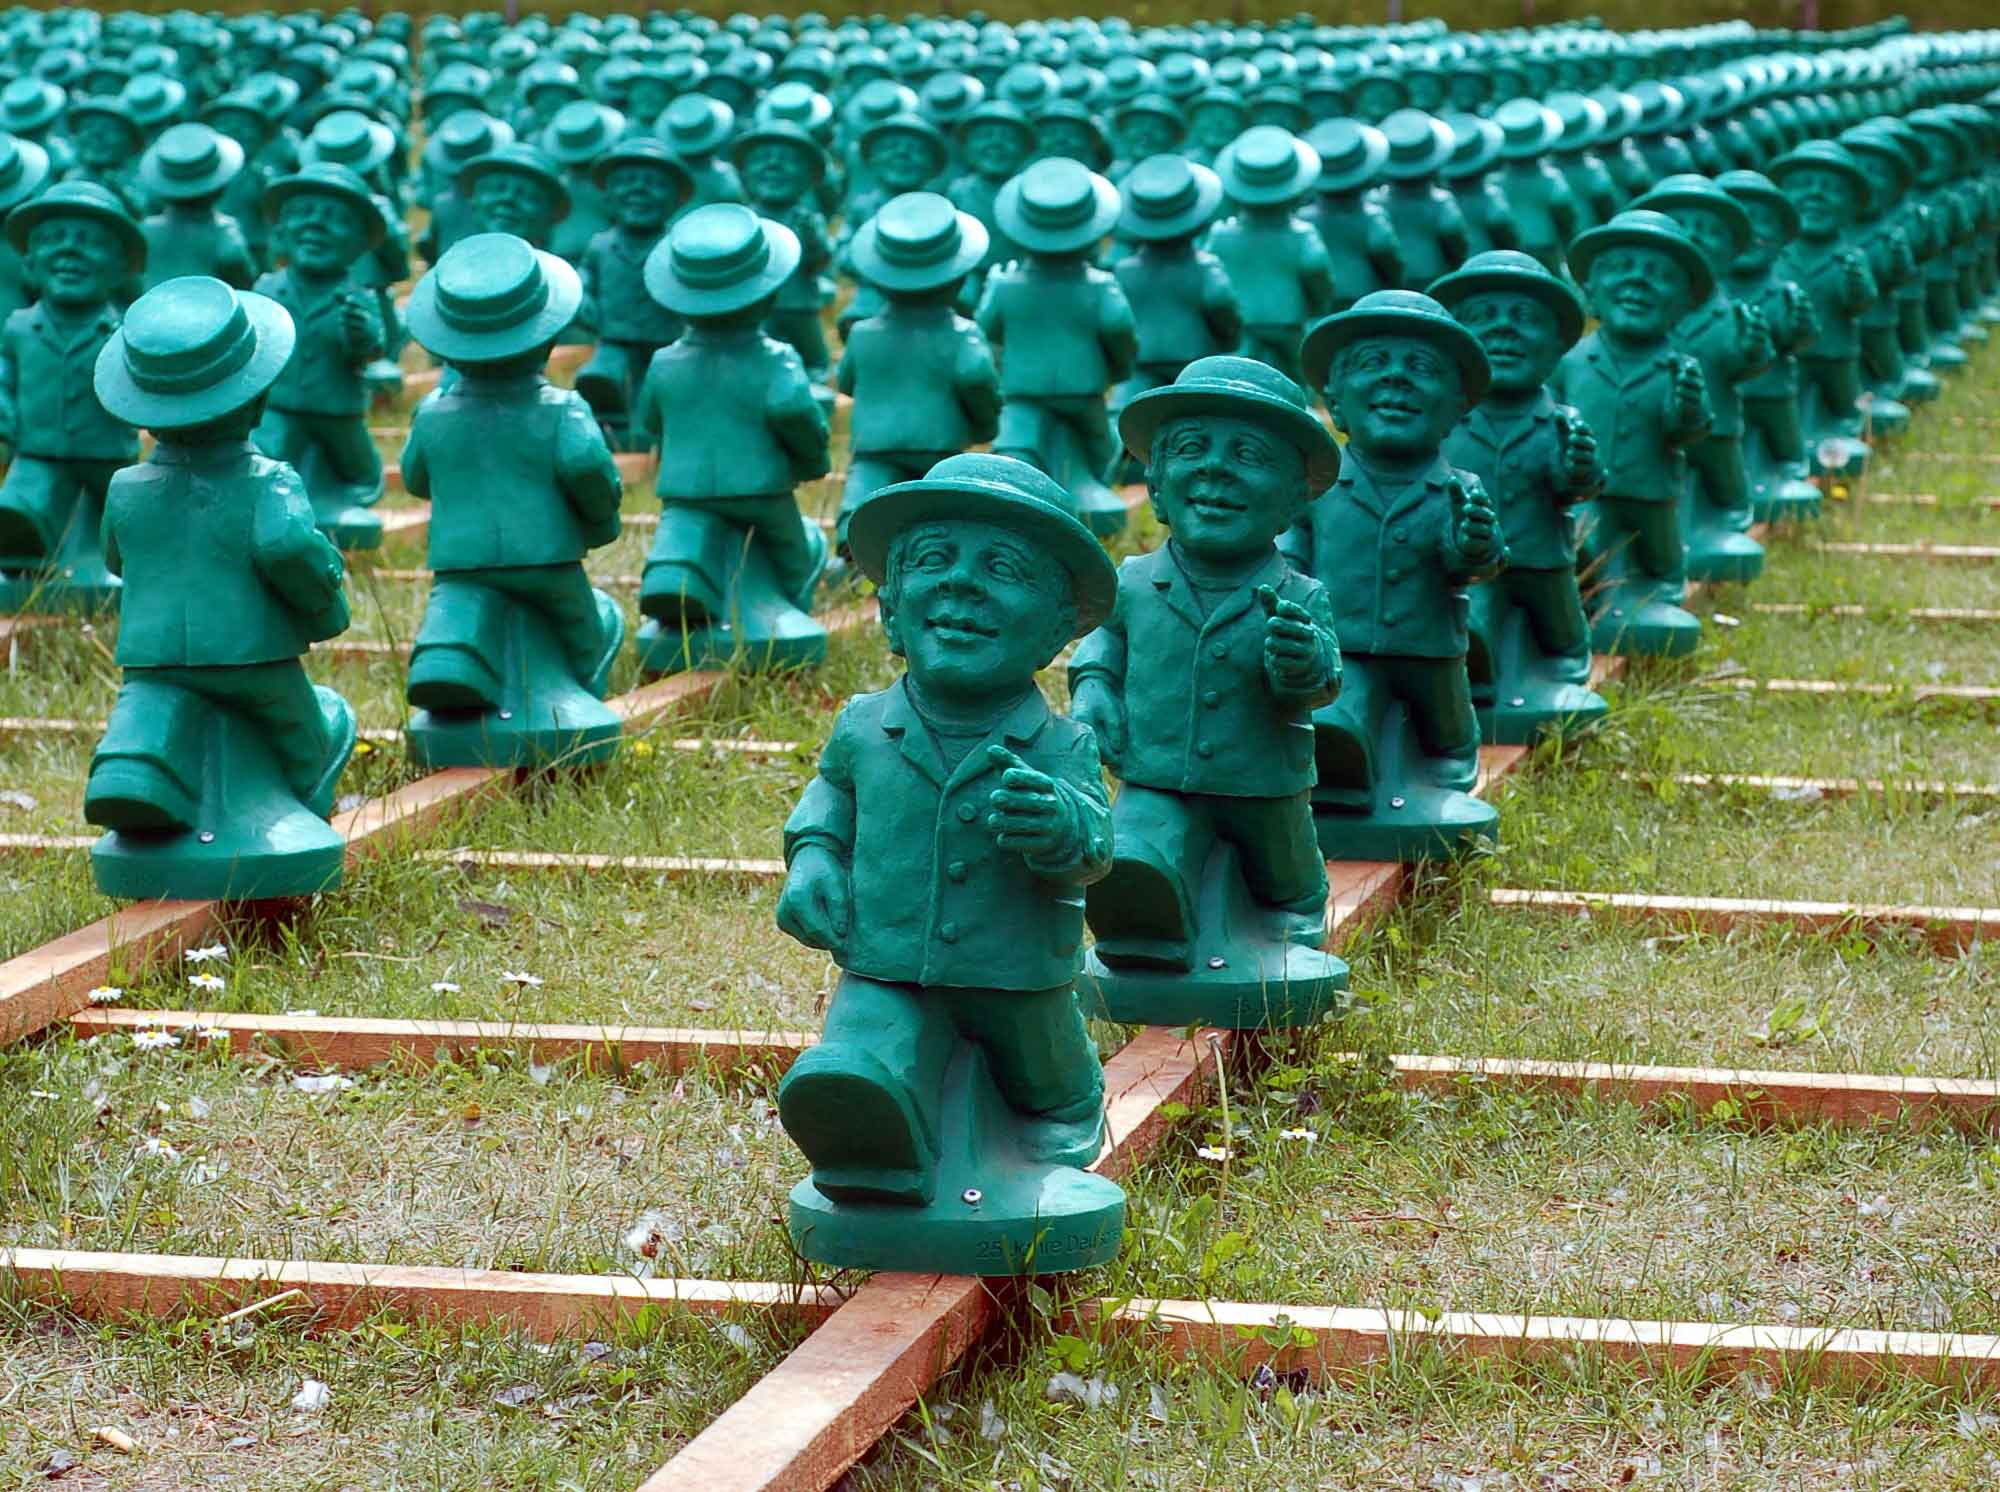 Green figurines